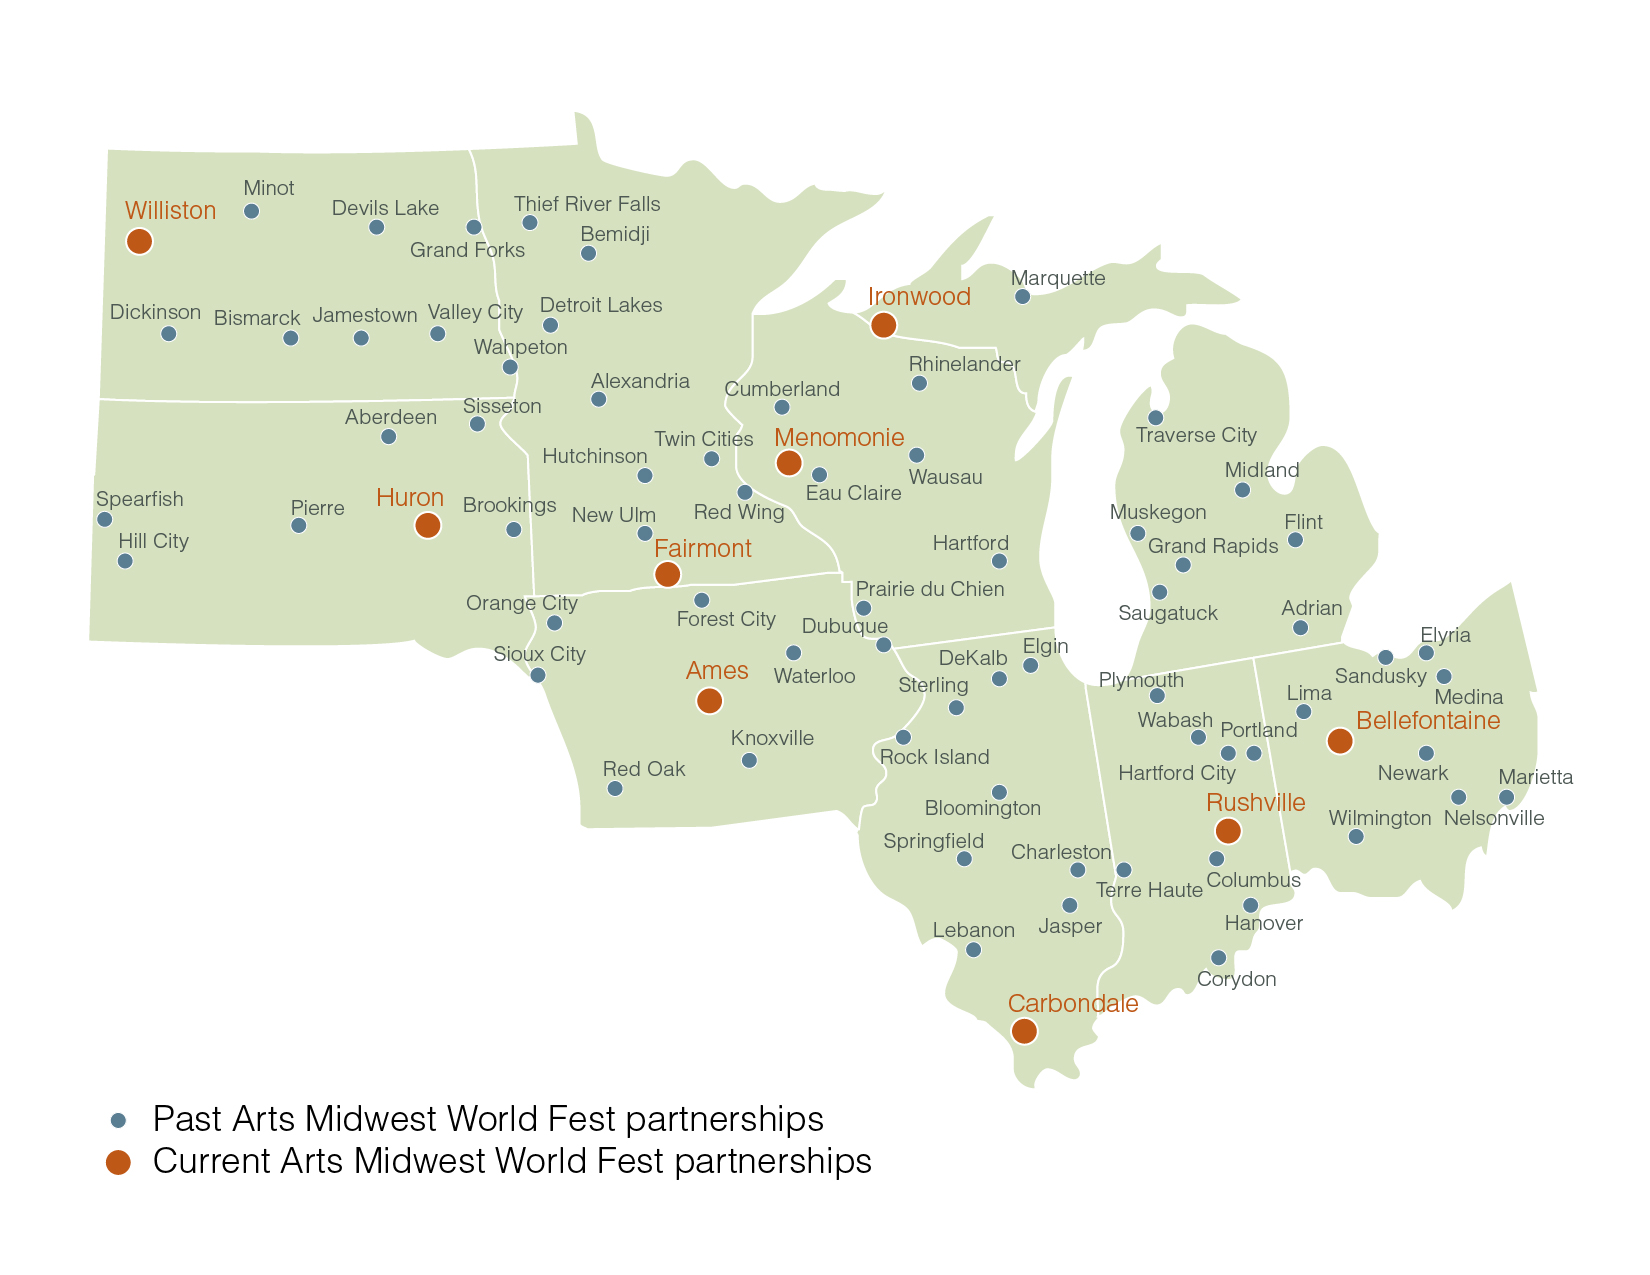 Map of past and current Arts Midwest World Fest partner communities.